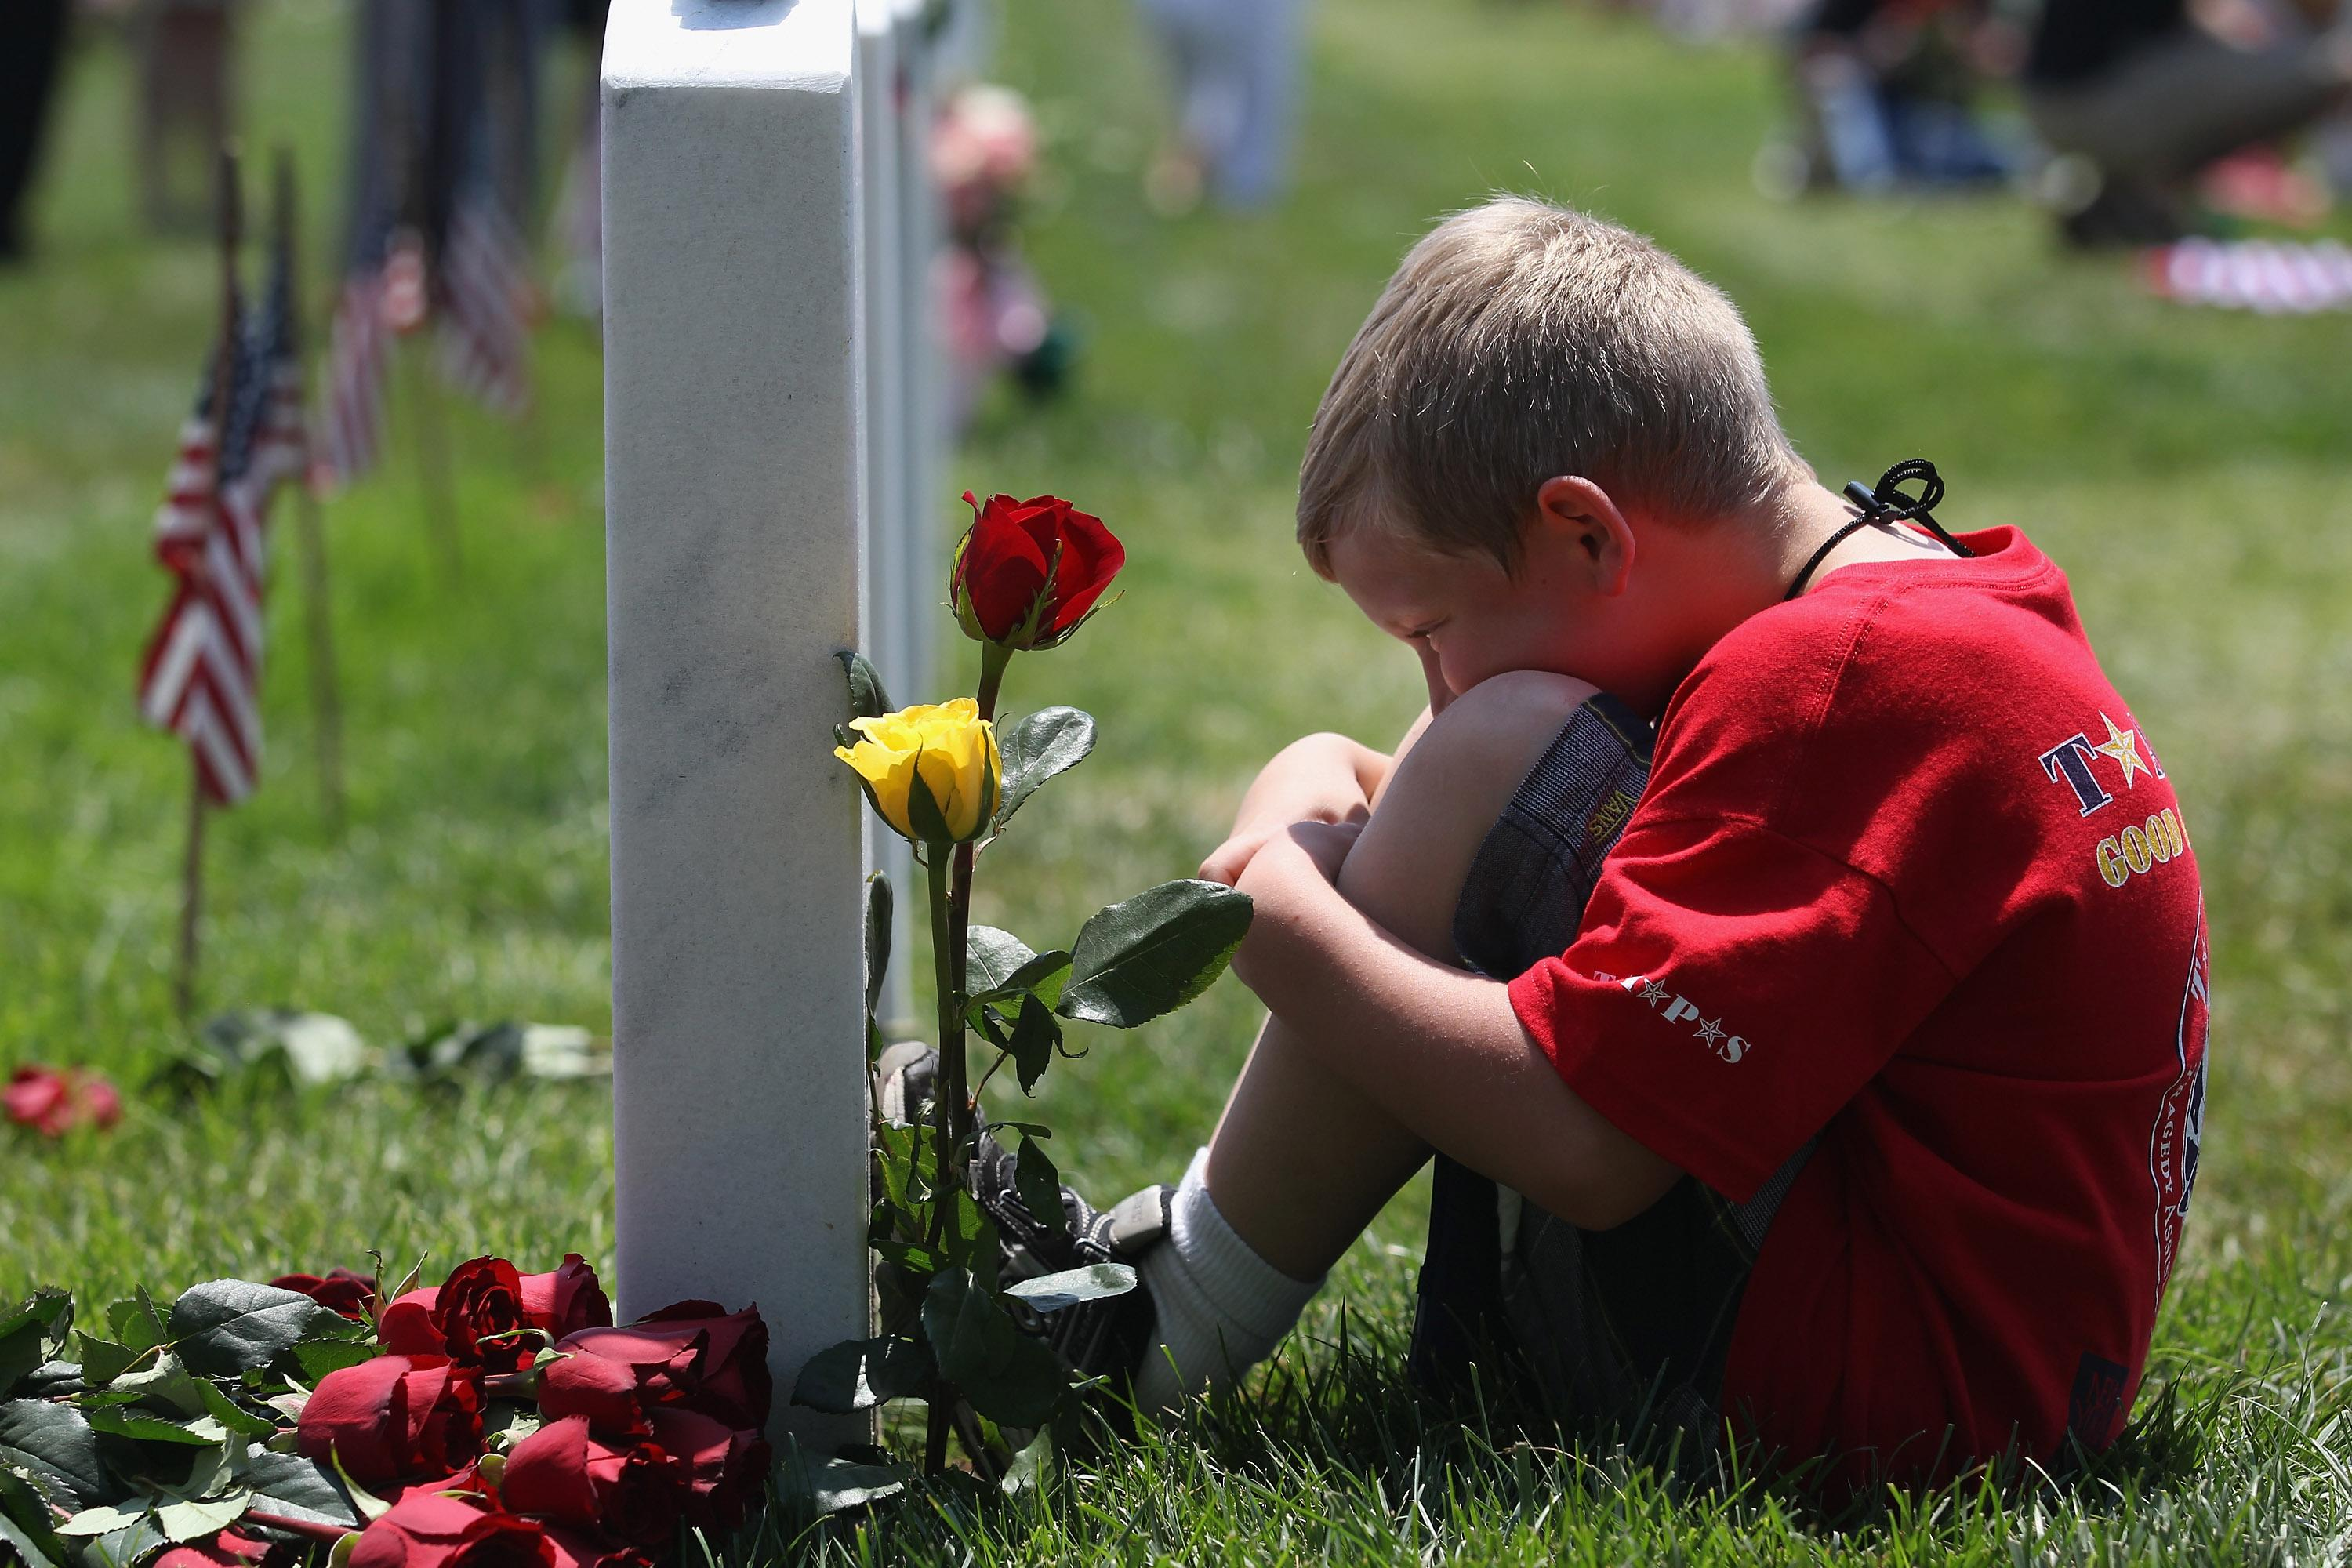 """Wyatt McCain, 8, from North Pole, Alaska, looks upon his father's grave at the National Cemetery on Memorial Day on May 28, 2012 in Arlington, Virginia. His dad, Army SFC Johnathan McCain, was killed by a roadside bomb in Afghanistan in November 2011. Wyatt came with his mother and three sisters to take part in a TAPS """"Good Grief Camp"""". Five hundred military children and teens, many of whom had a parent that was killed in the Afghan and Iraq wars, attended the annual four-day """"Good Grief Camp"""" in Arlington, VA and Washington, DC, which is run by TAPS (Tragedy Assistance Program for Survivors). The camp helped them learn coping skills and build relationships so they know they are not alone in the grief of their loved one. They met others of their own age group, learned together and shared their feelings, both through group activities and one-on-one mentors, who are all active duty or former military servicemembers. Some 1,200 adults, most of whom are grieving parents and spouses, also attend the National Military Survival Seminar held concurrently with the children's camp. The TAPS slogan is """"Remember the Love. Celebrate the Life. Share the Journey."""" (Photo by John Moore/Getty Images)"""